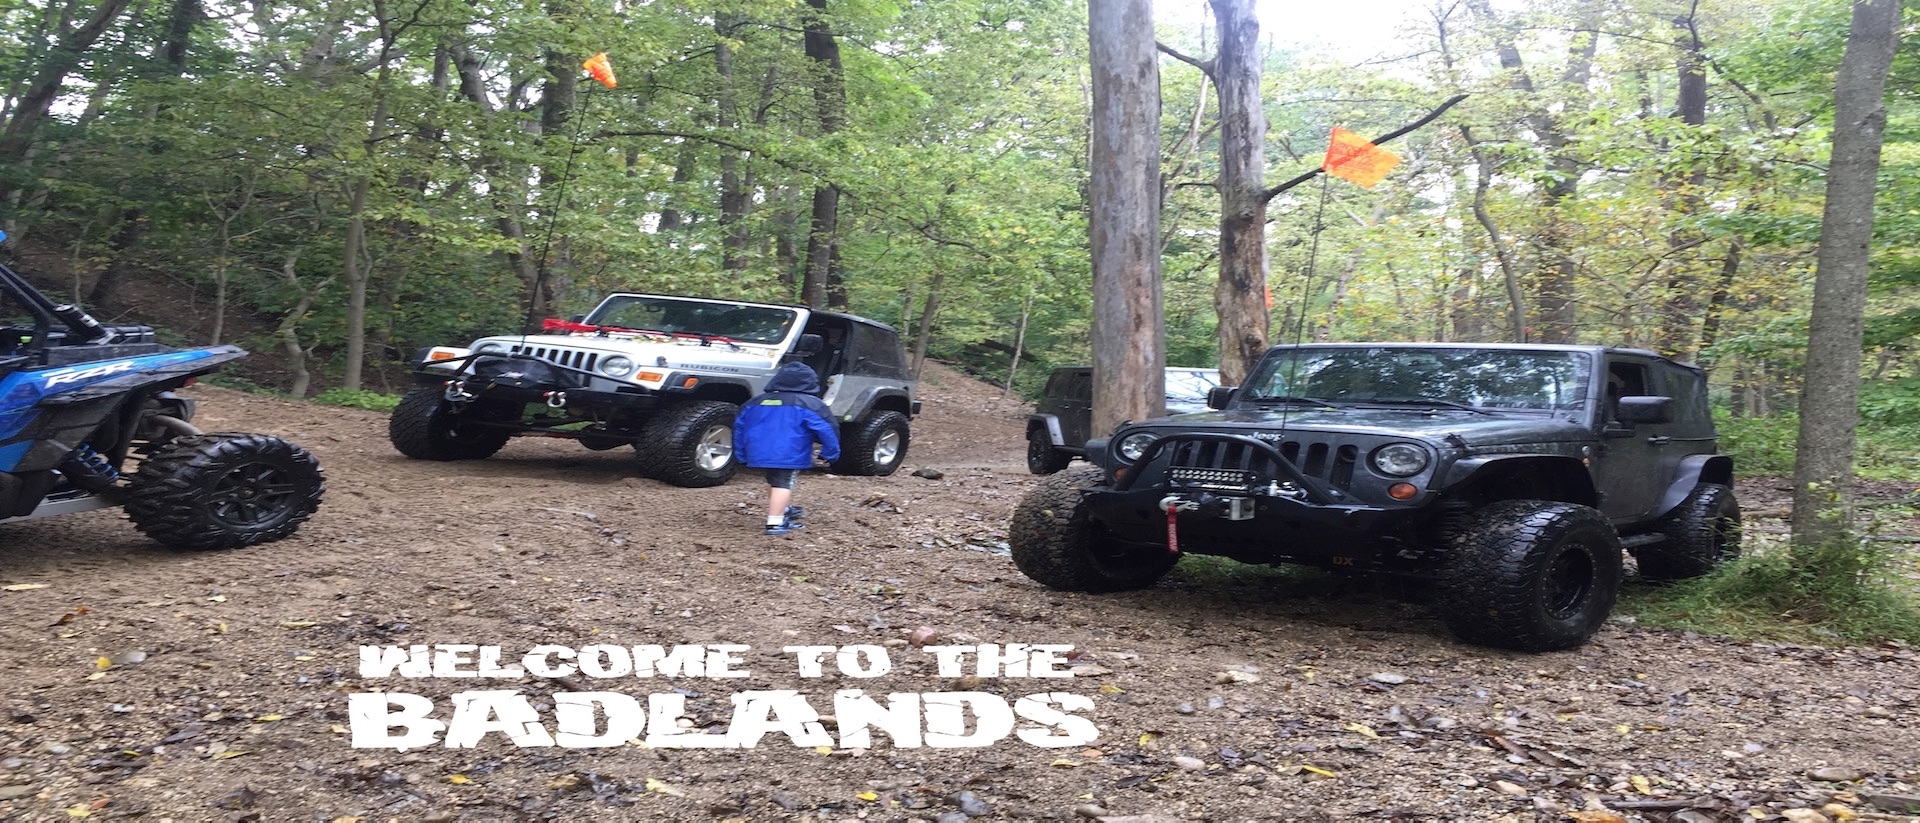 Badlands Off Road Park is located in Attica, IN - shop our